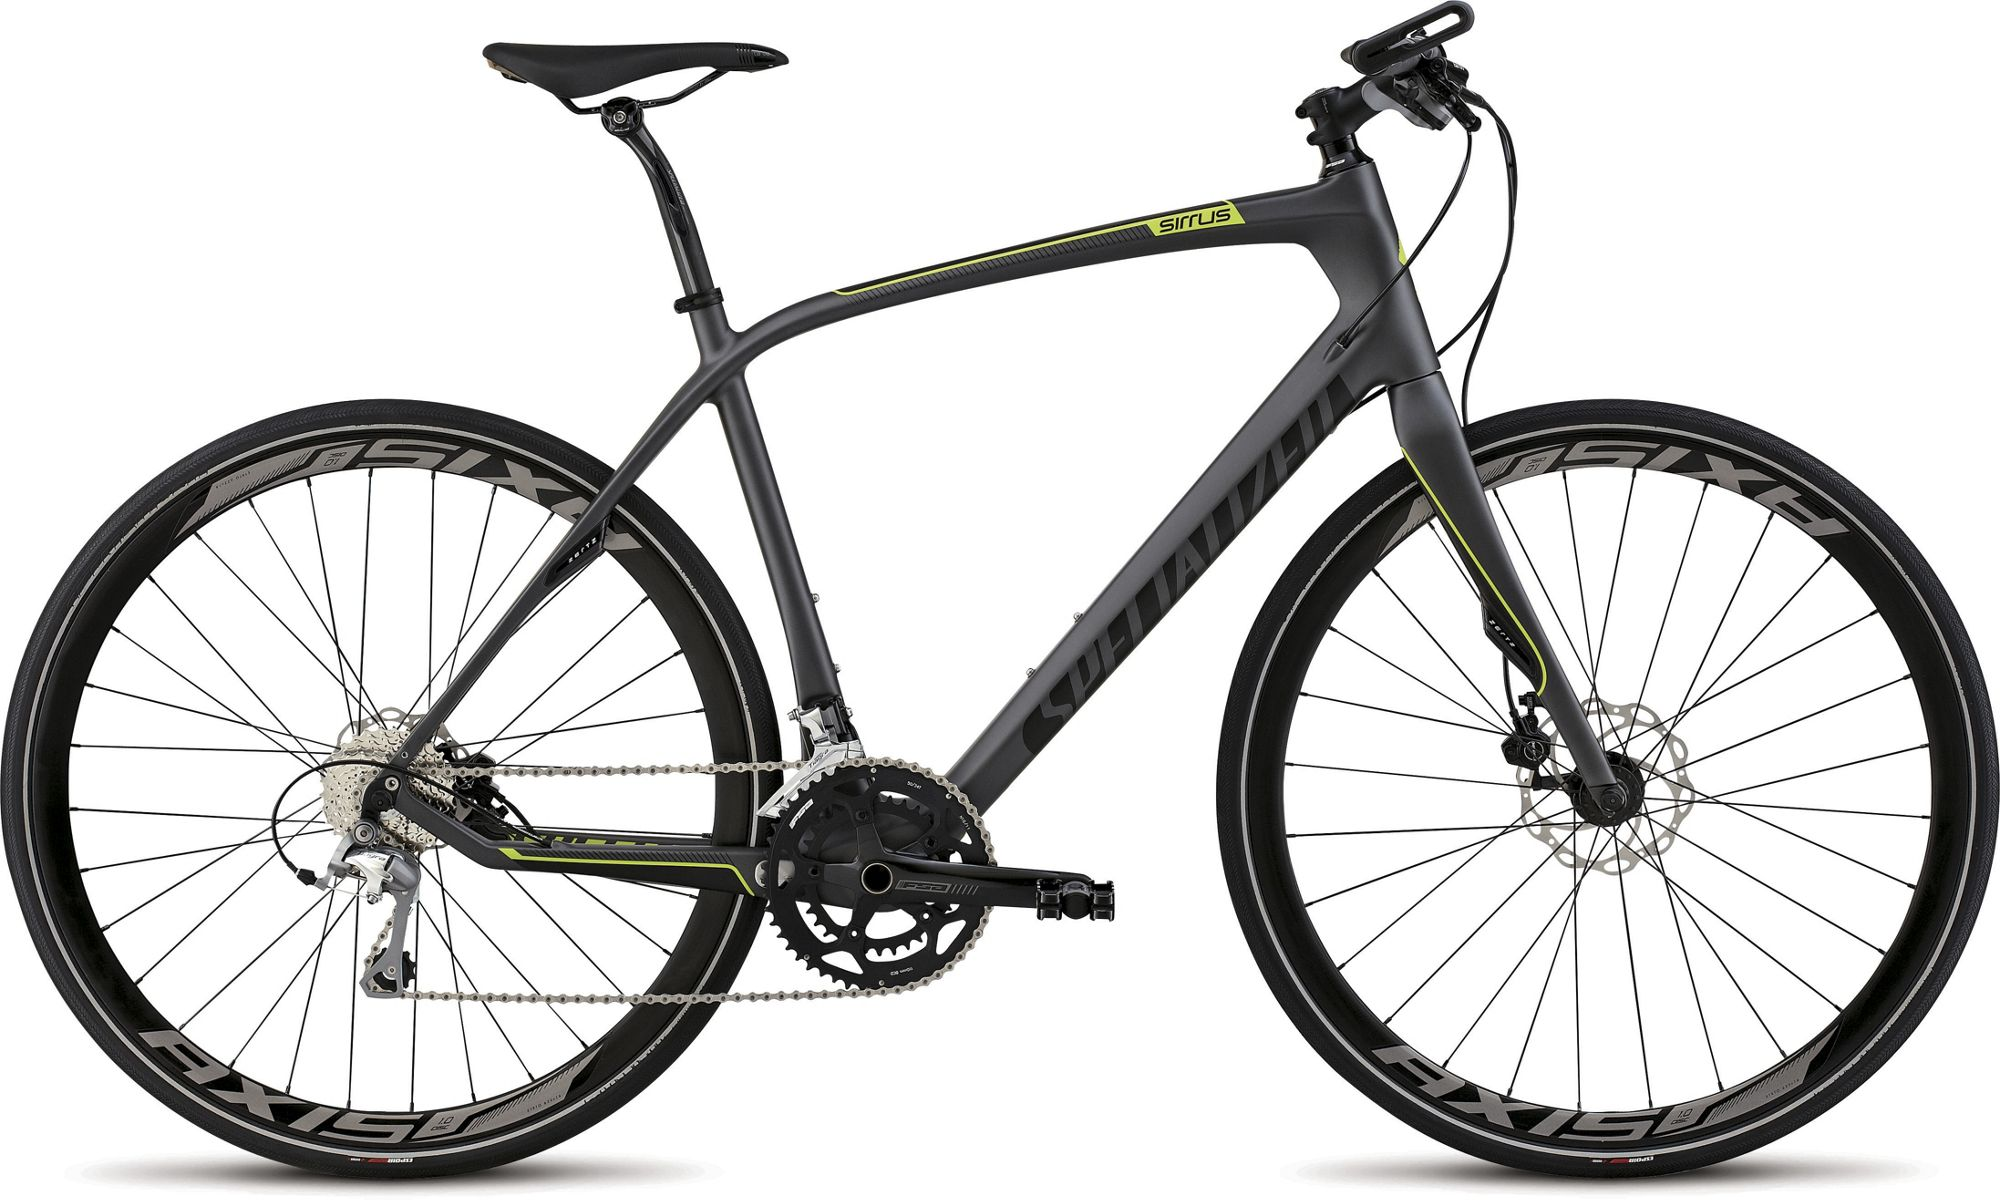 35a220c0241 Specialized Sirrus Comp Carbon Disc 2015 review - The Bike List